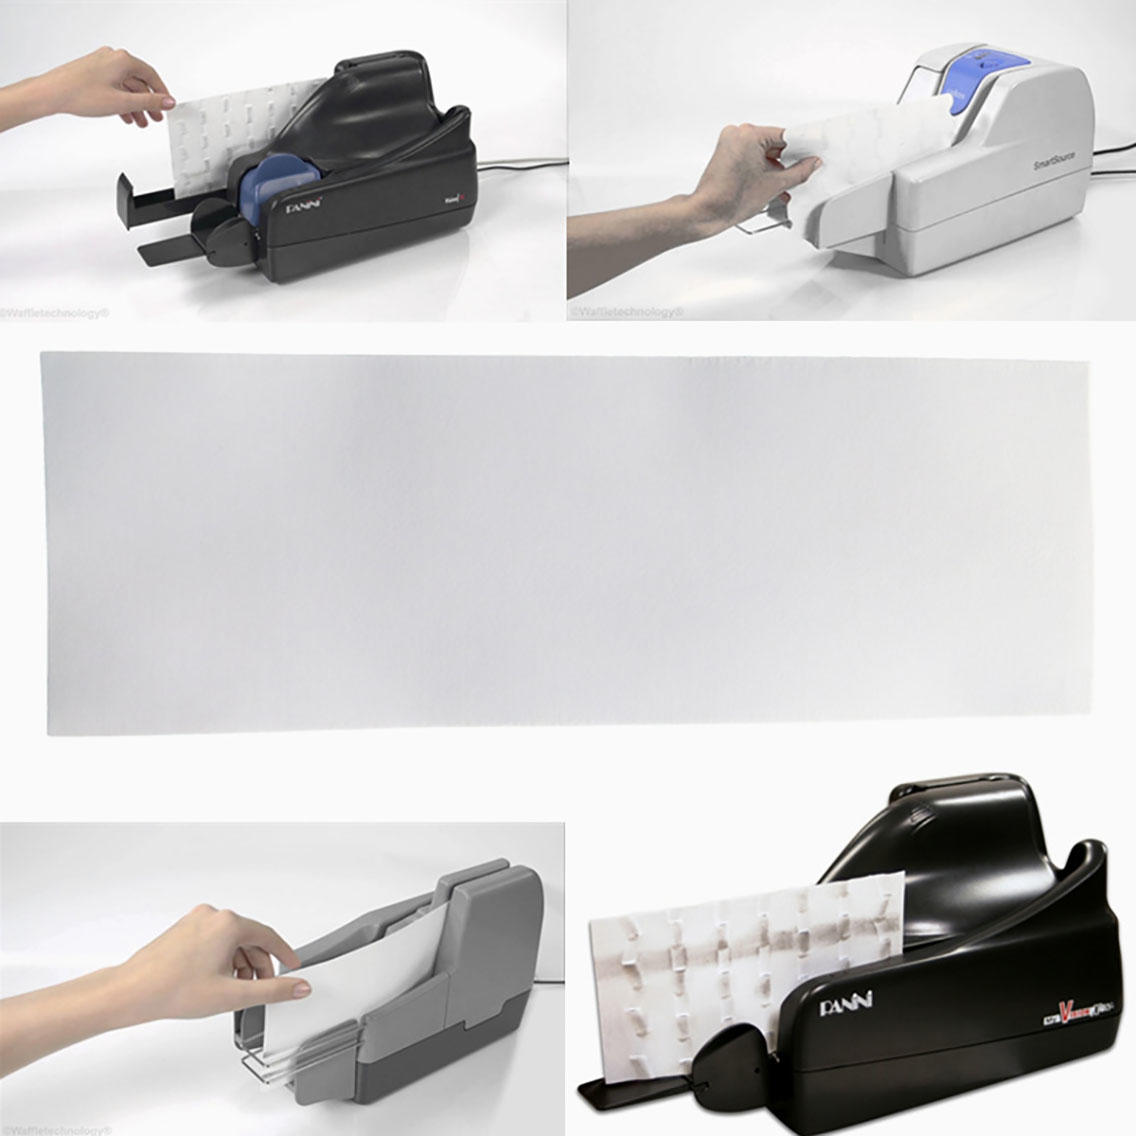 Cleanmo quick check scanner cleaning cards manufacturer for scanner cleaning